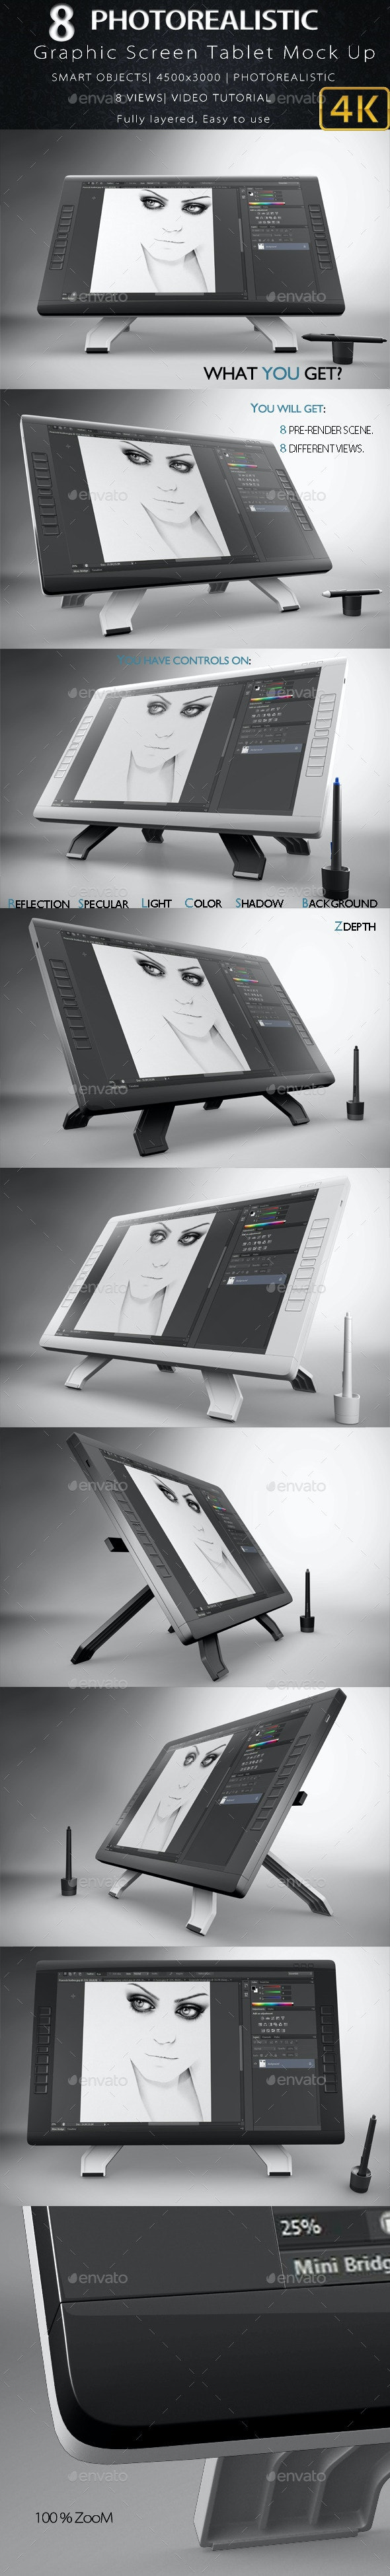 Graphic Screen Tablet Mock Up - Miscellaneous Displays